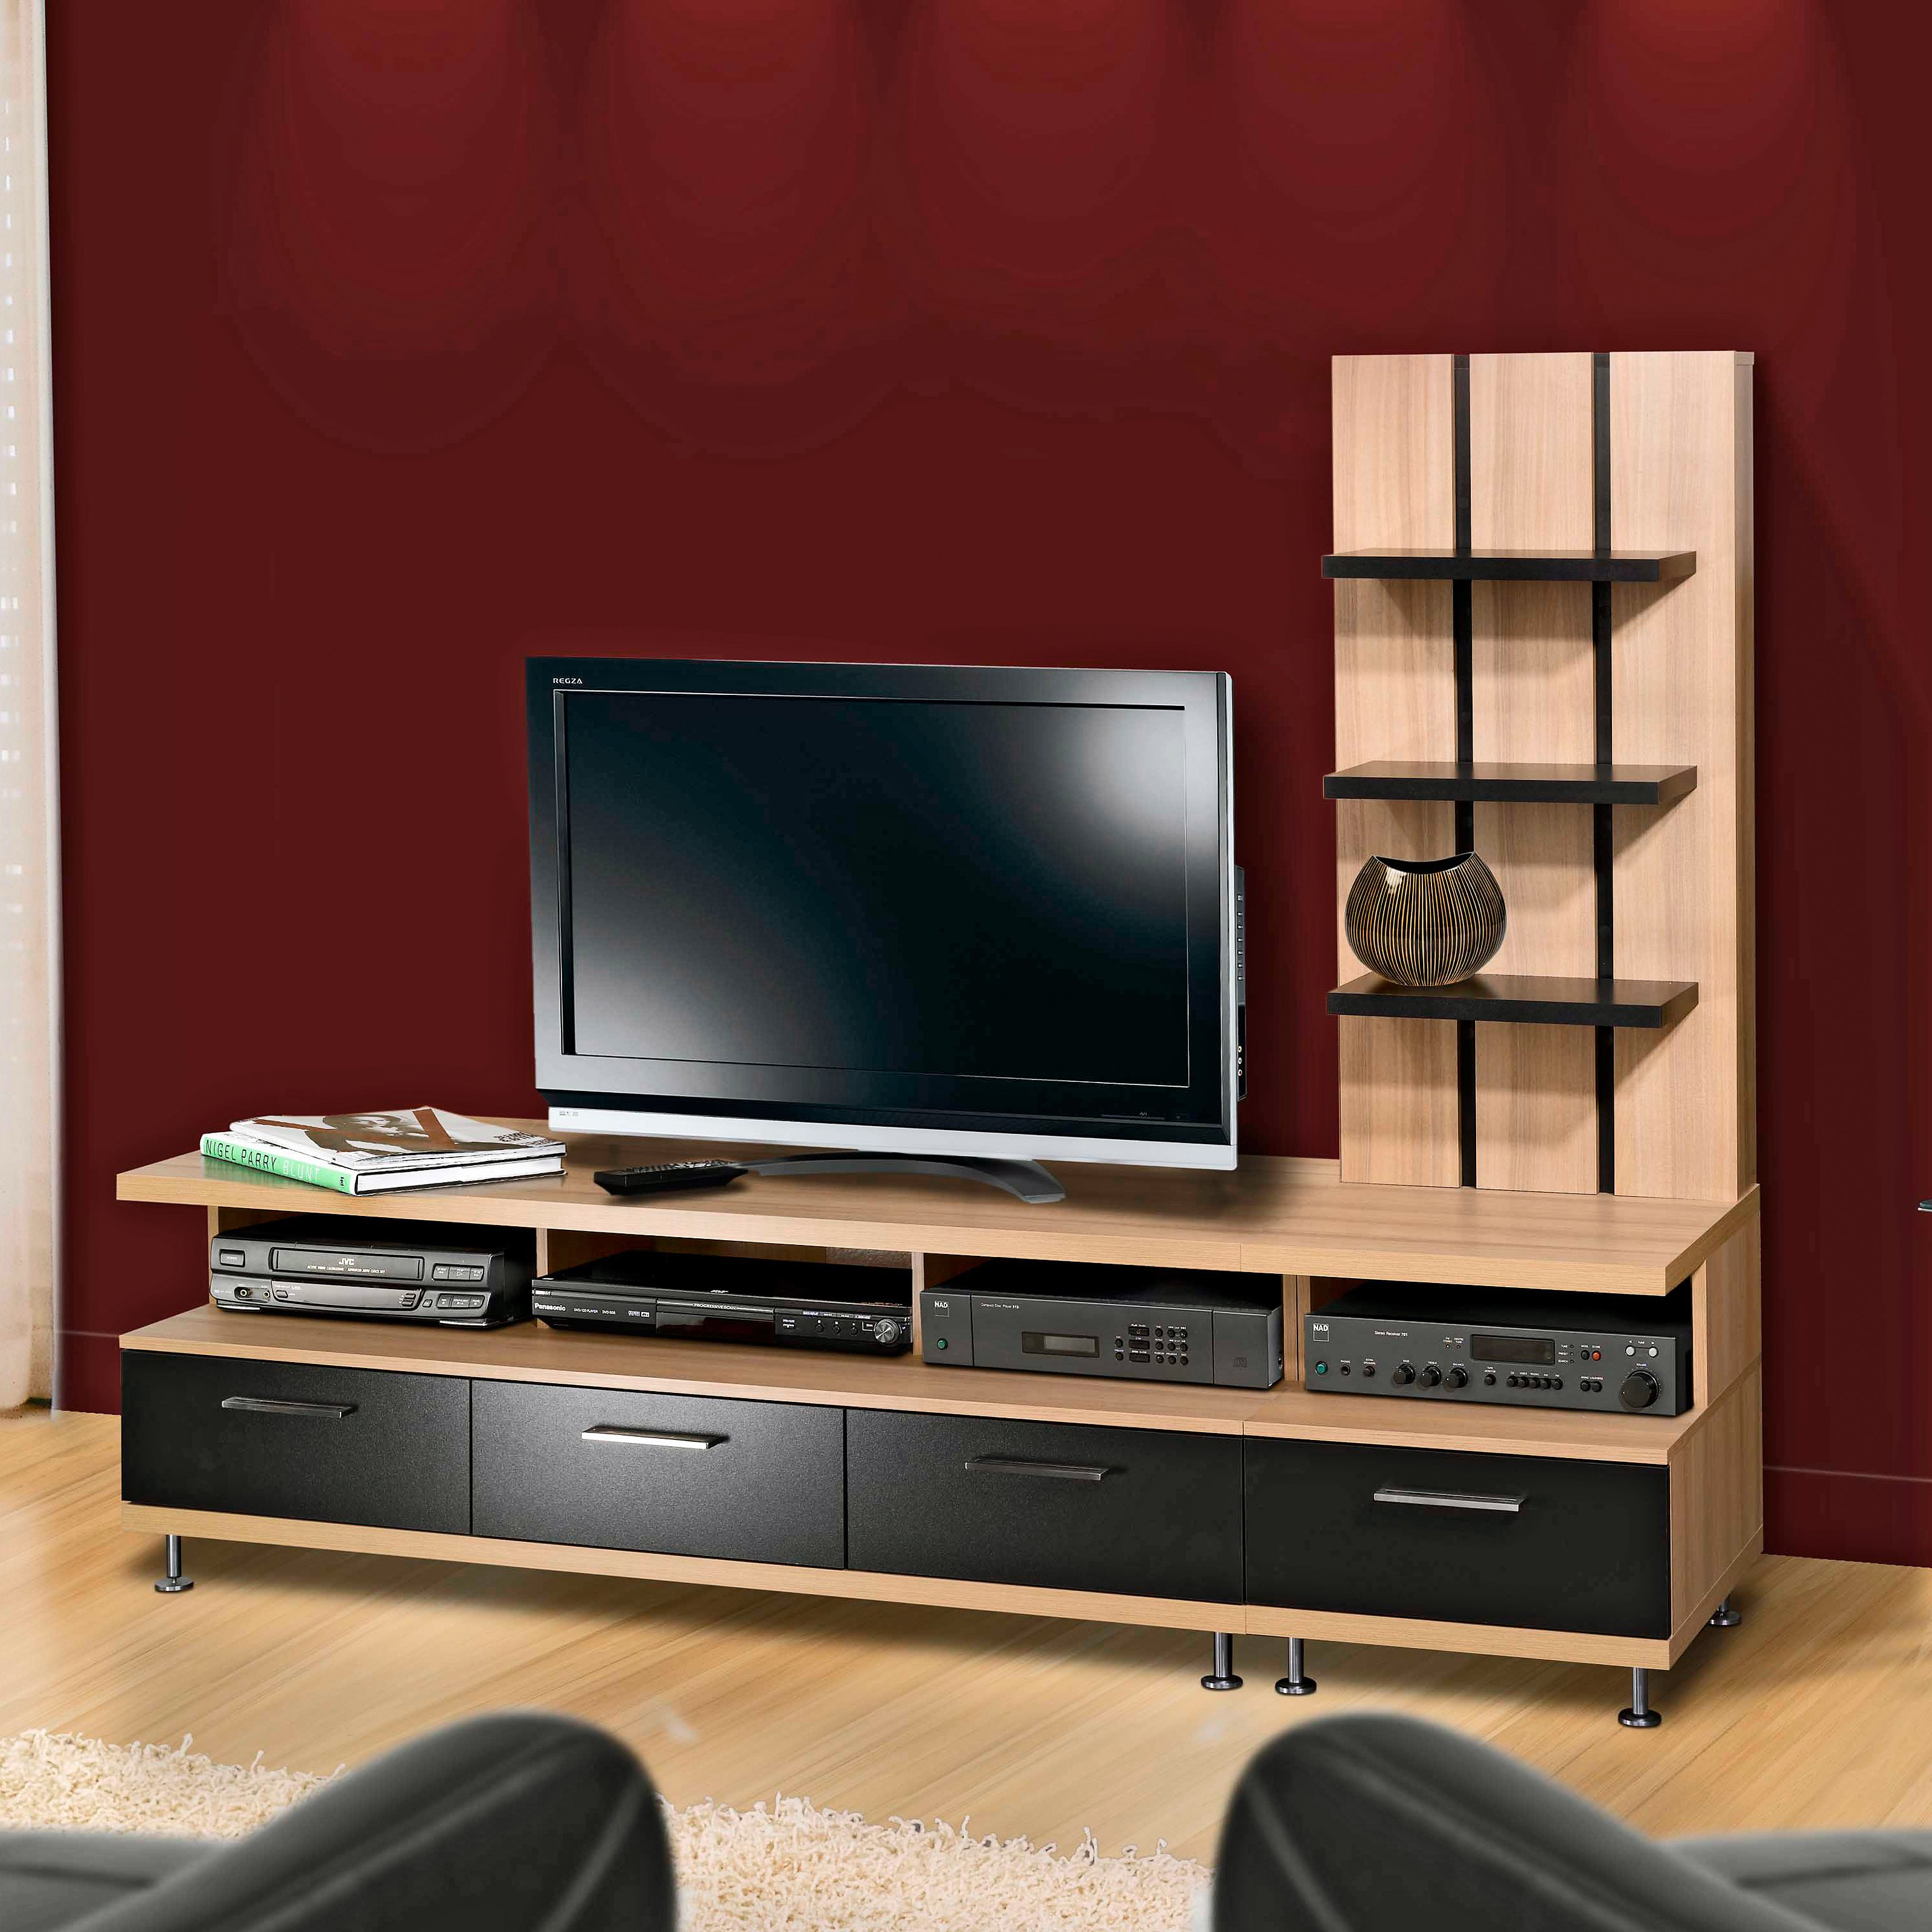 Fashionable Contemporary Tv Stands For Flat Screens With Regard To Ikea Tv Stand Hemnes Design Ideas Lack Modern Corner Wood (View 8 of 20)